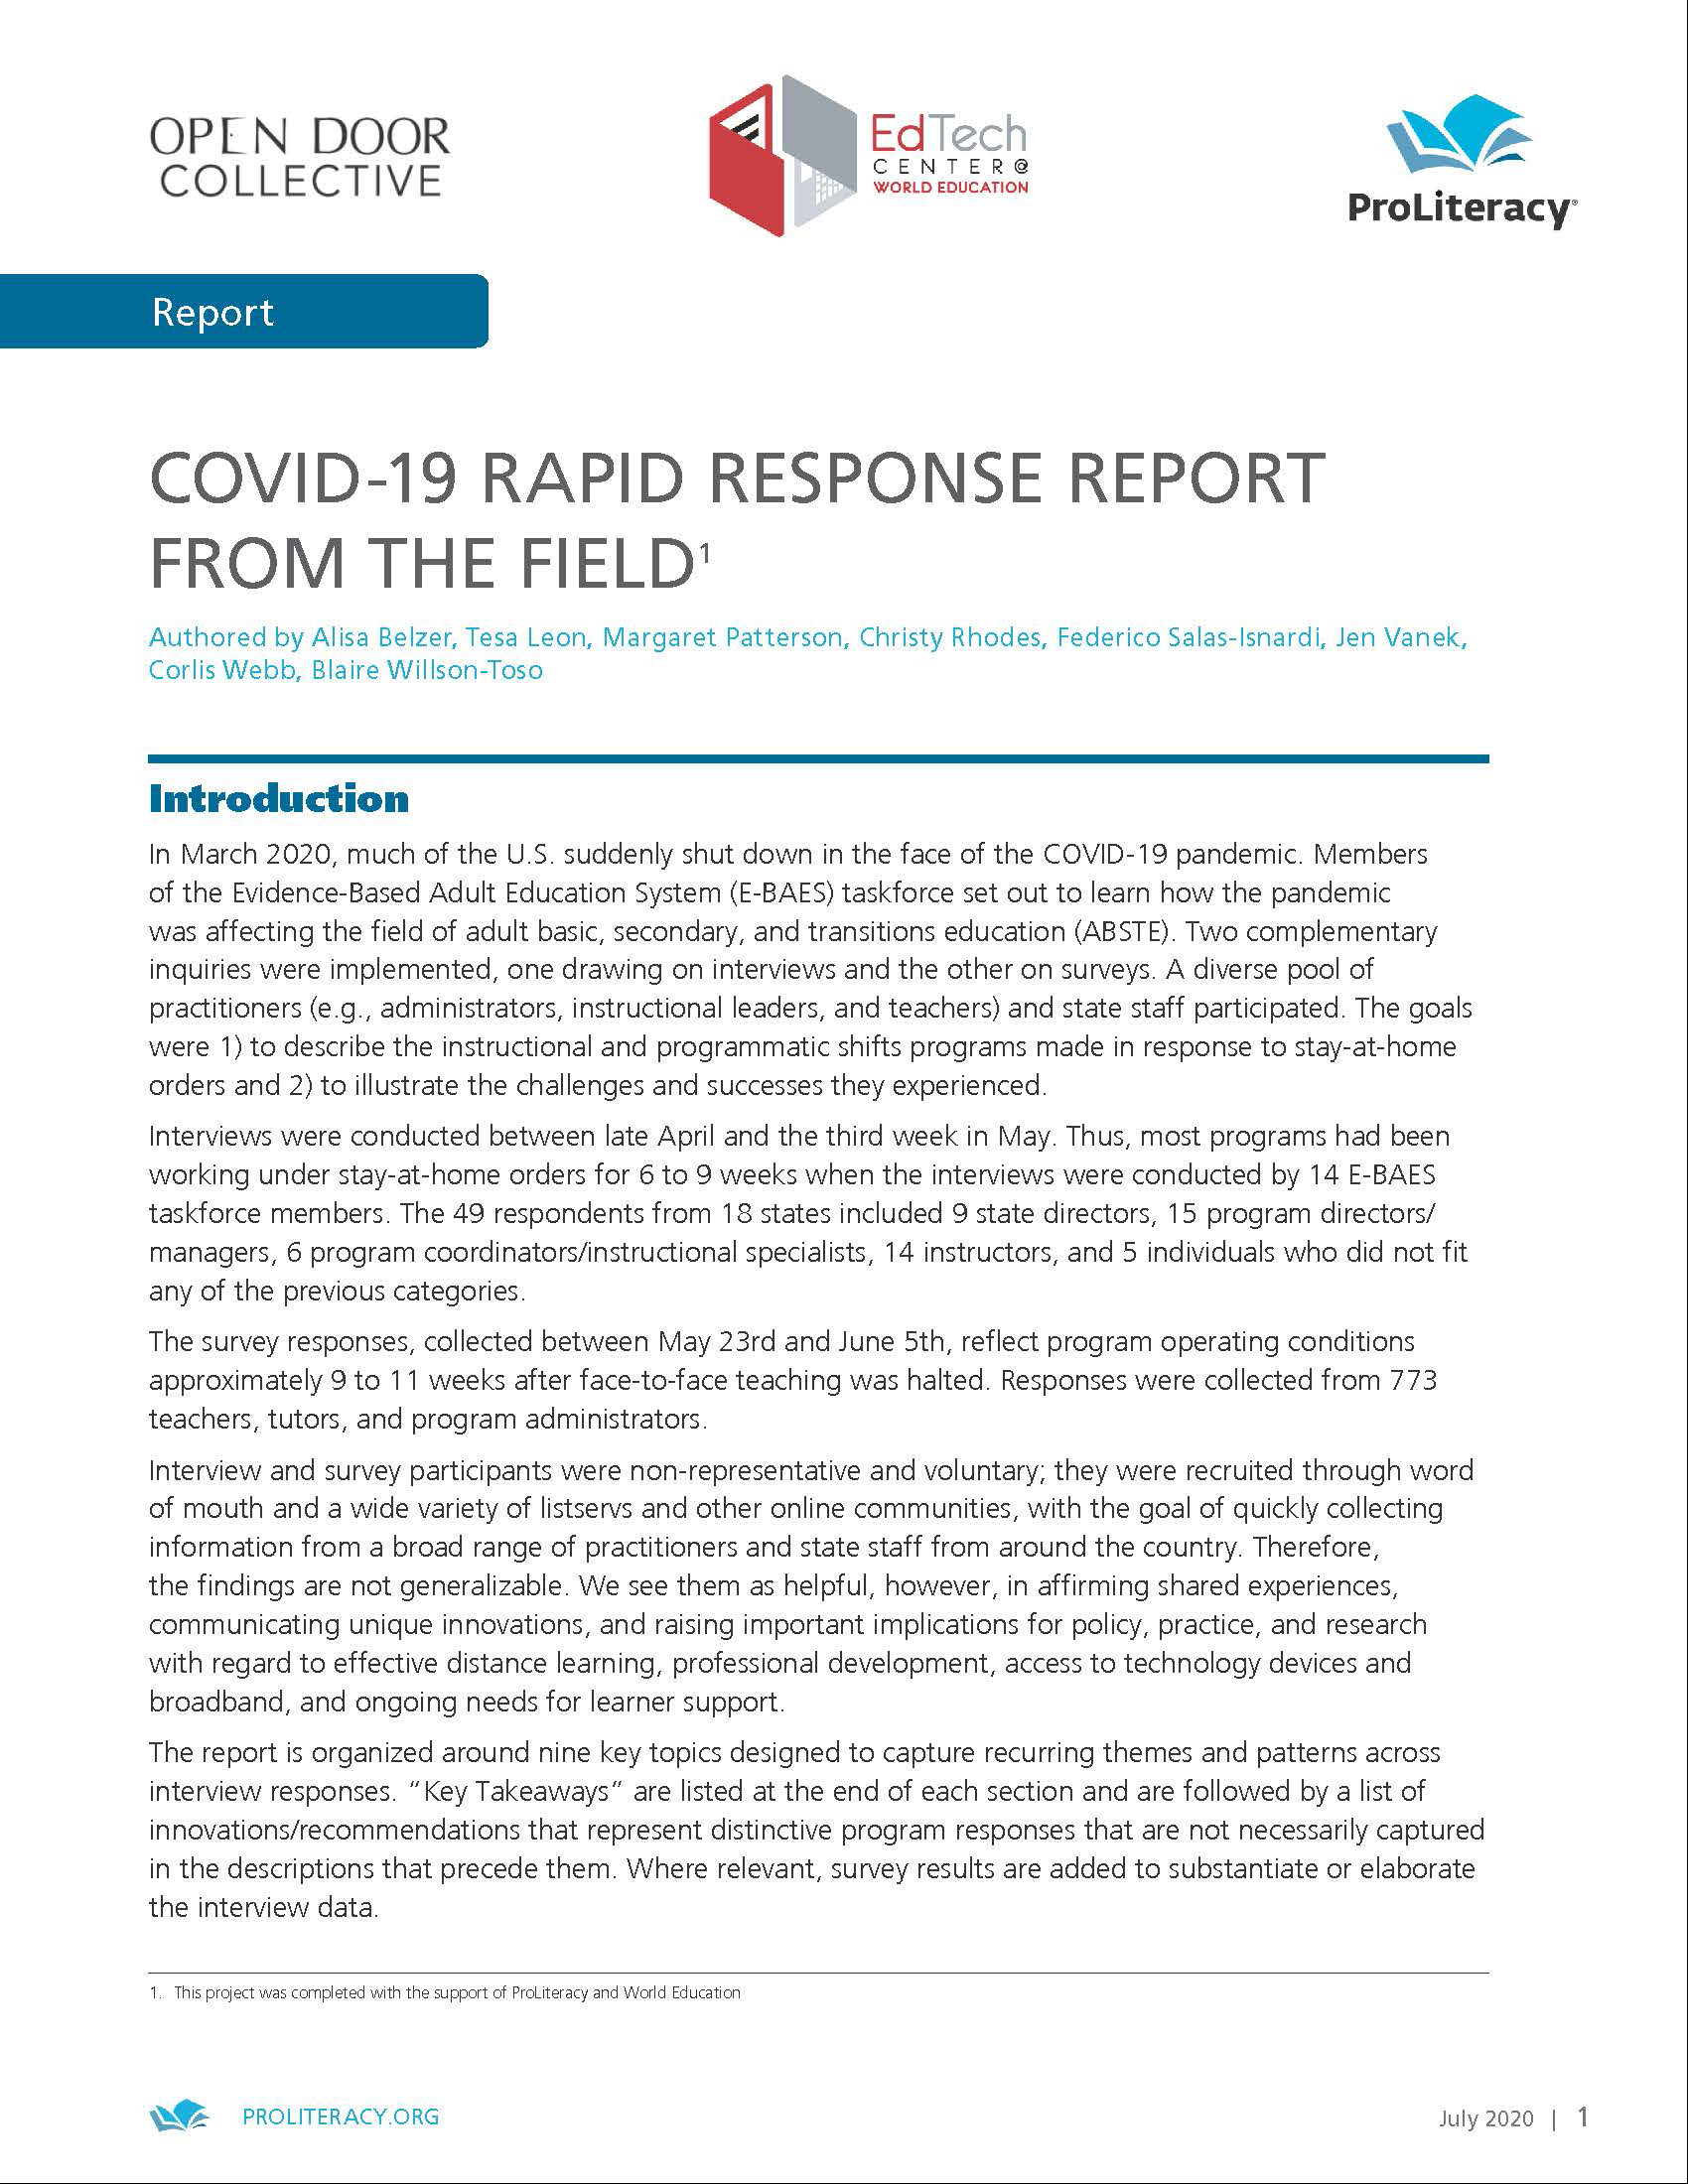 COVID-19 RAPID RESPONSE REPORT FROM THE FIELD